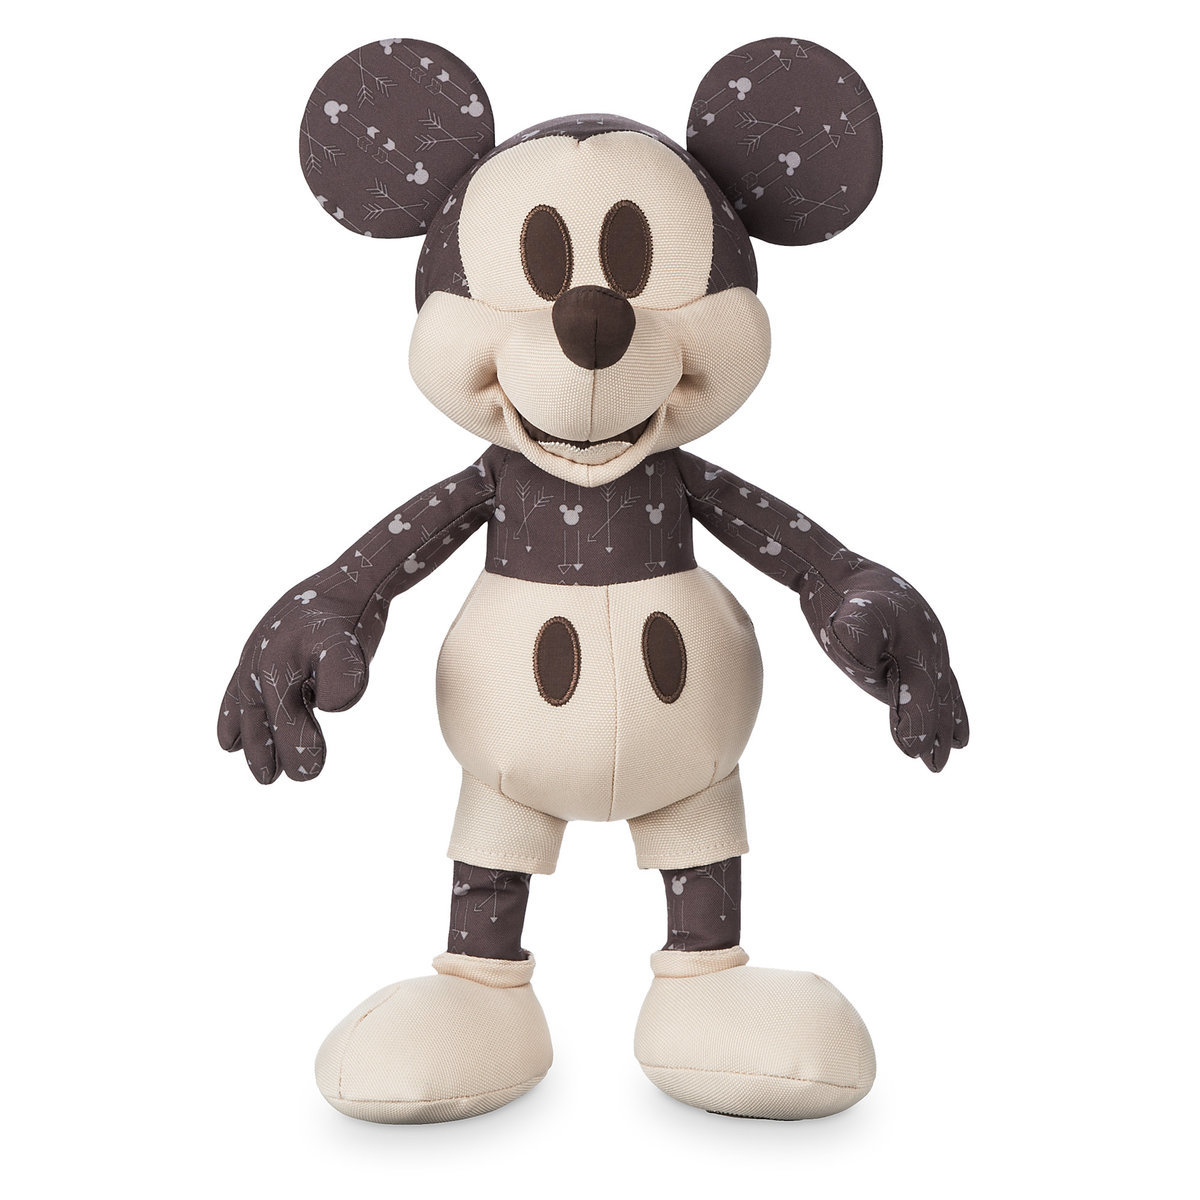 8fee937ba13 Product Image of Mickey Mouse Memories Plush - Medium - November - Limited  Release   1